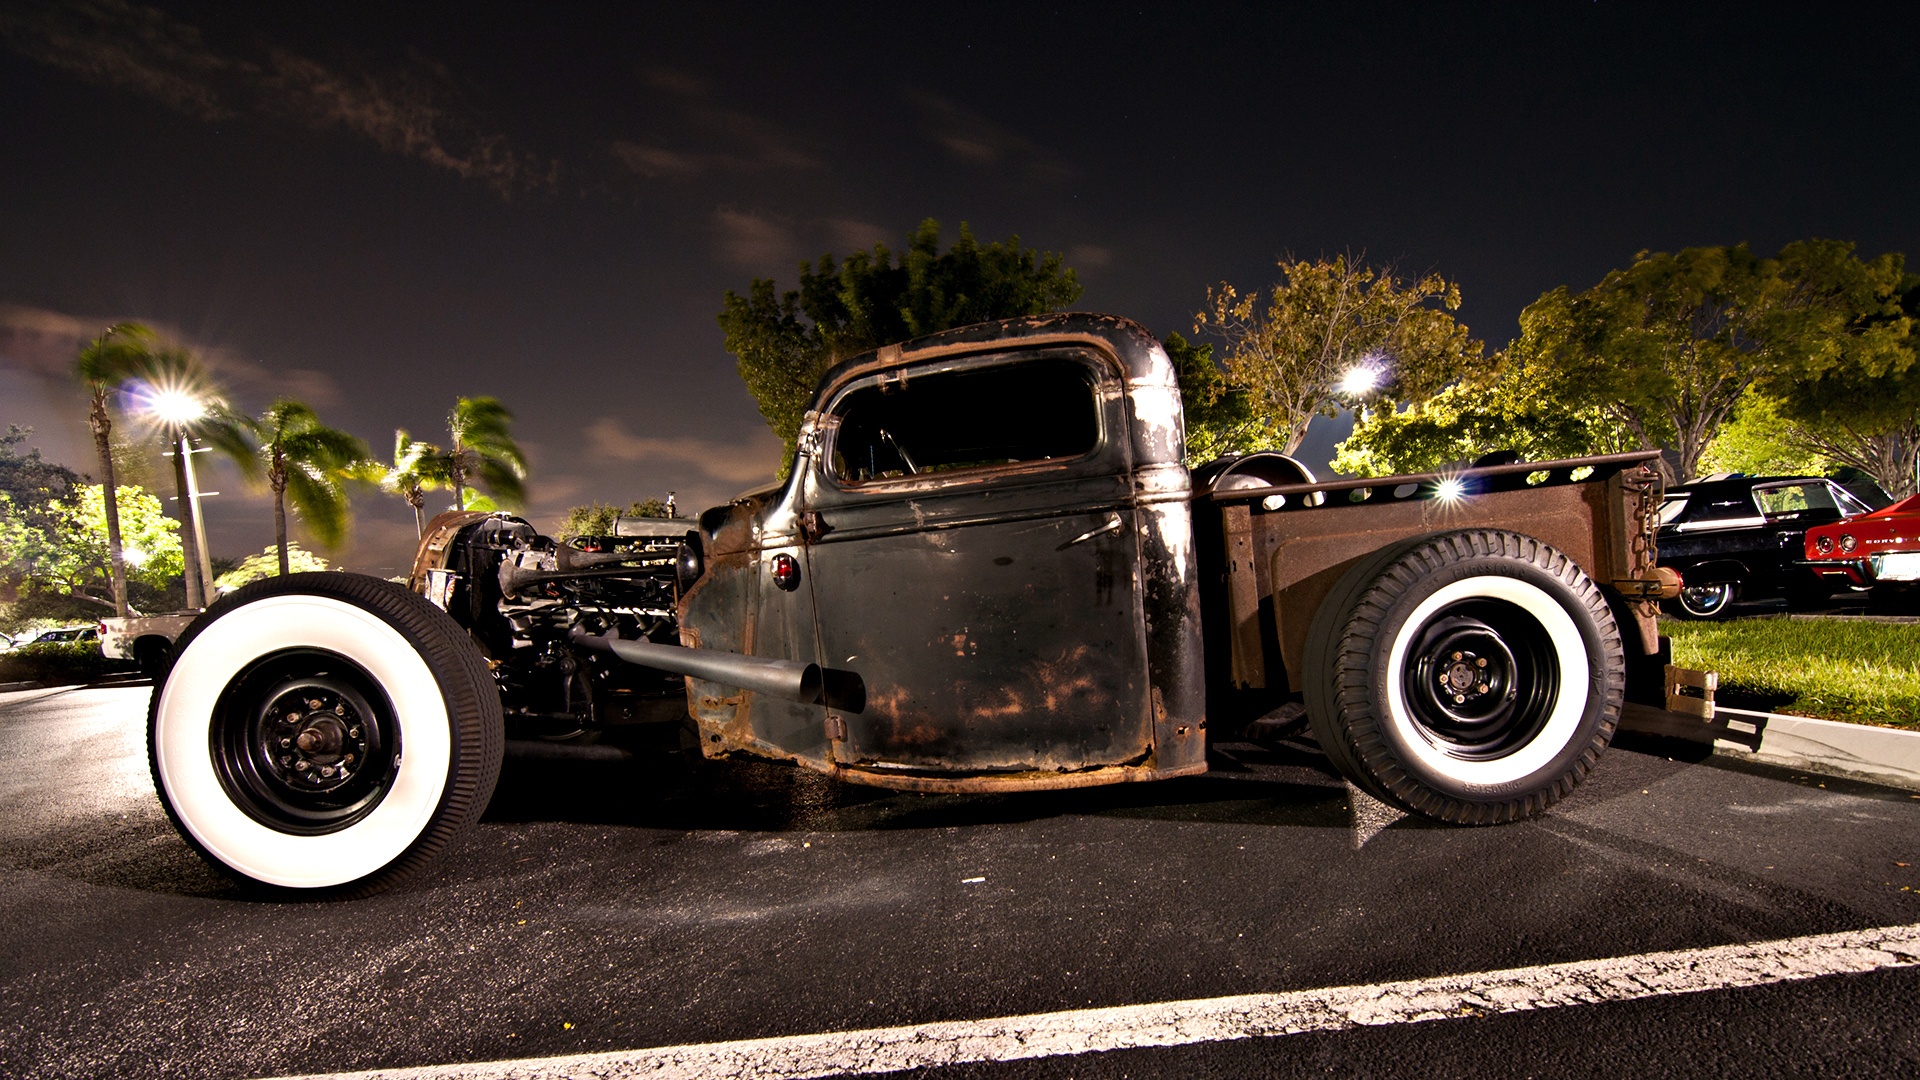 Hot Rod Wallpapers A Link to the Past Photos Hot Rod Cars 1920x1080